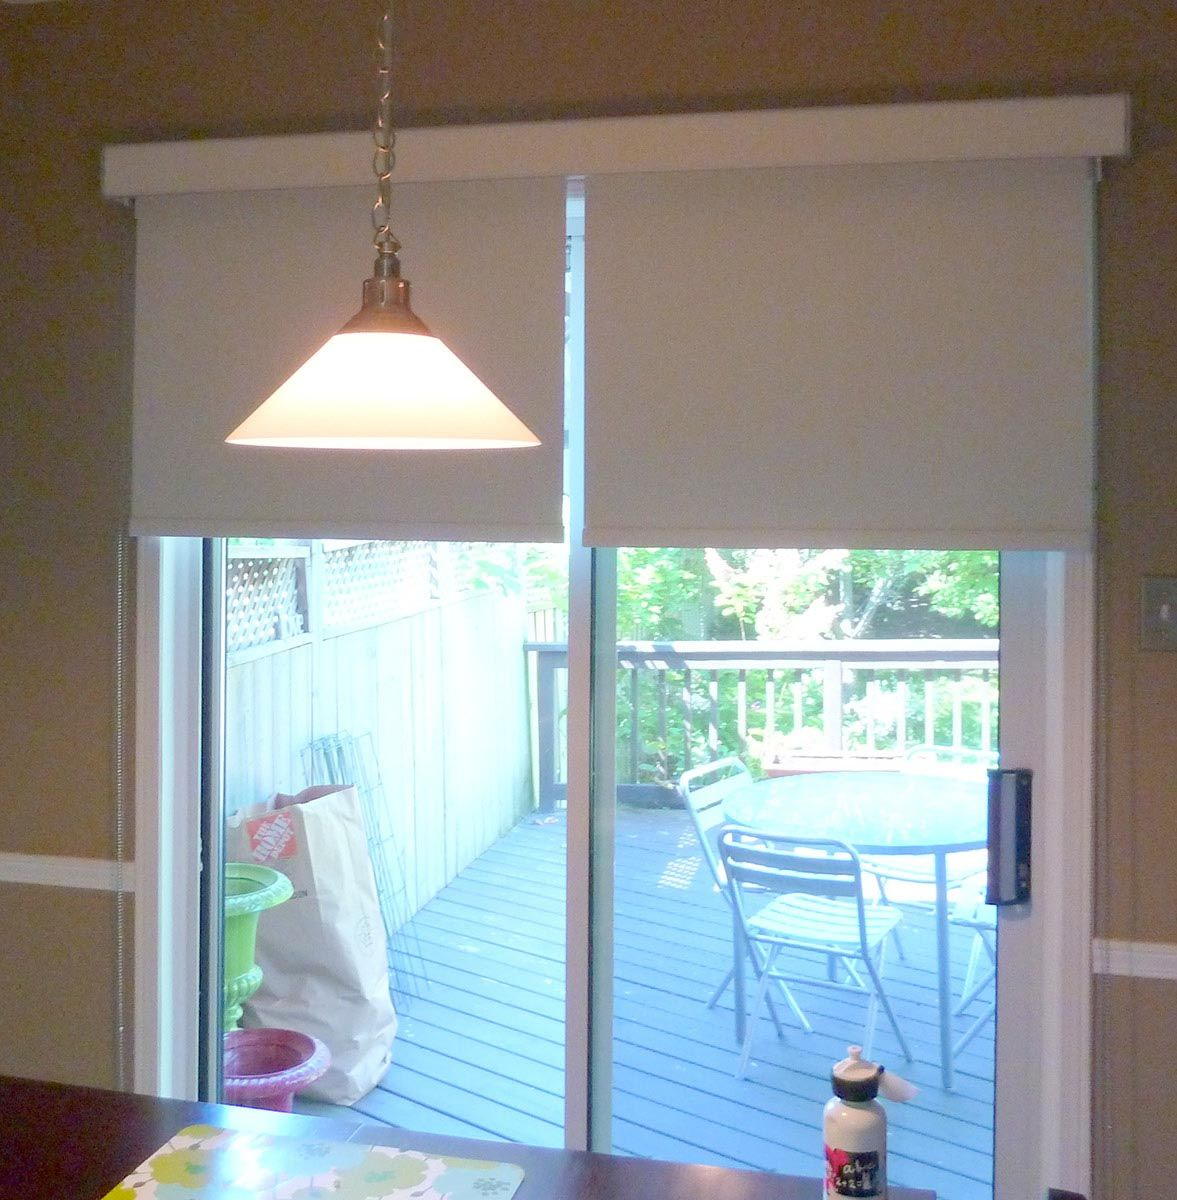 Roller Shades for Patio Doors | Window Shades | Pinterest | Patio ...